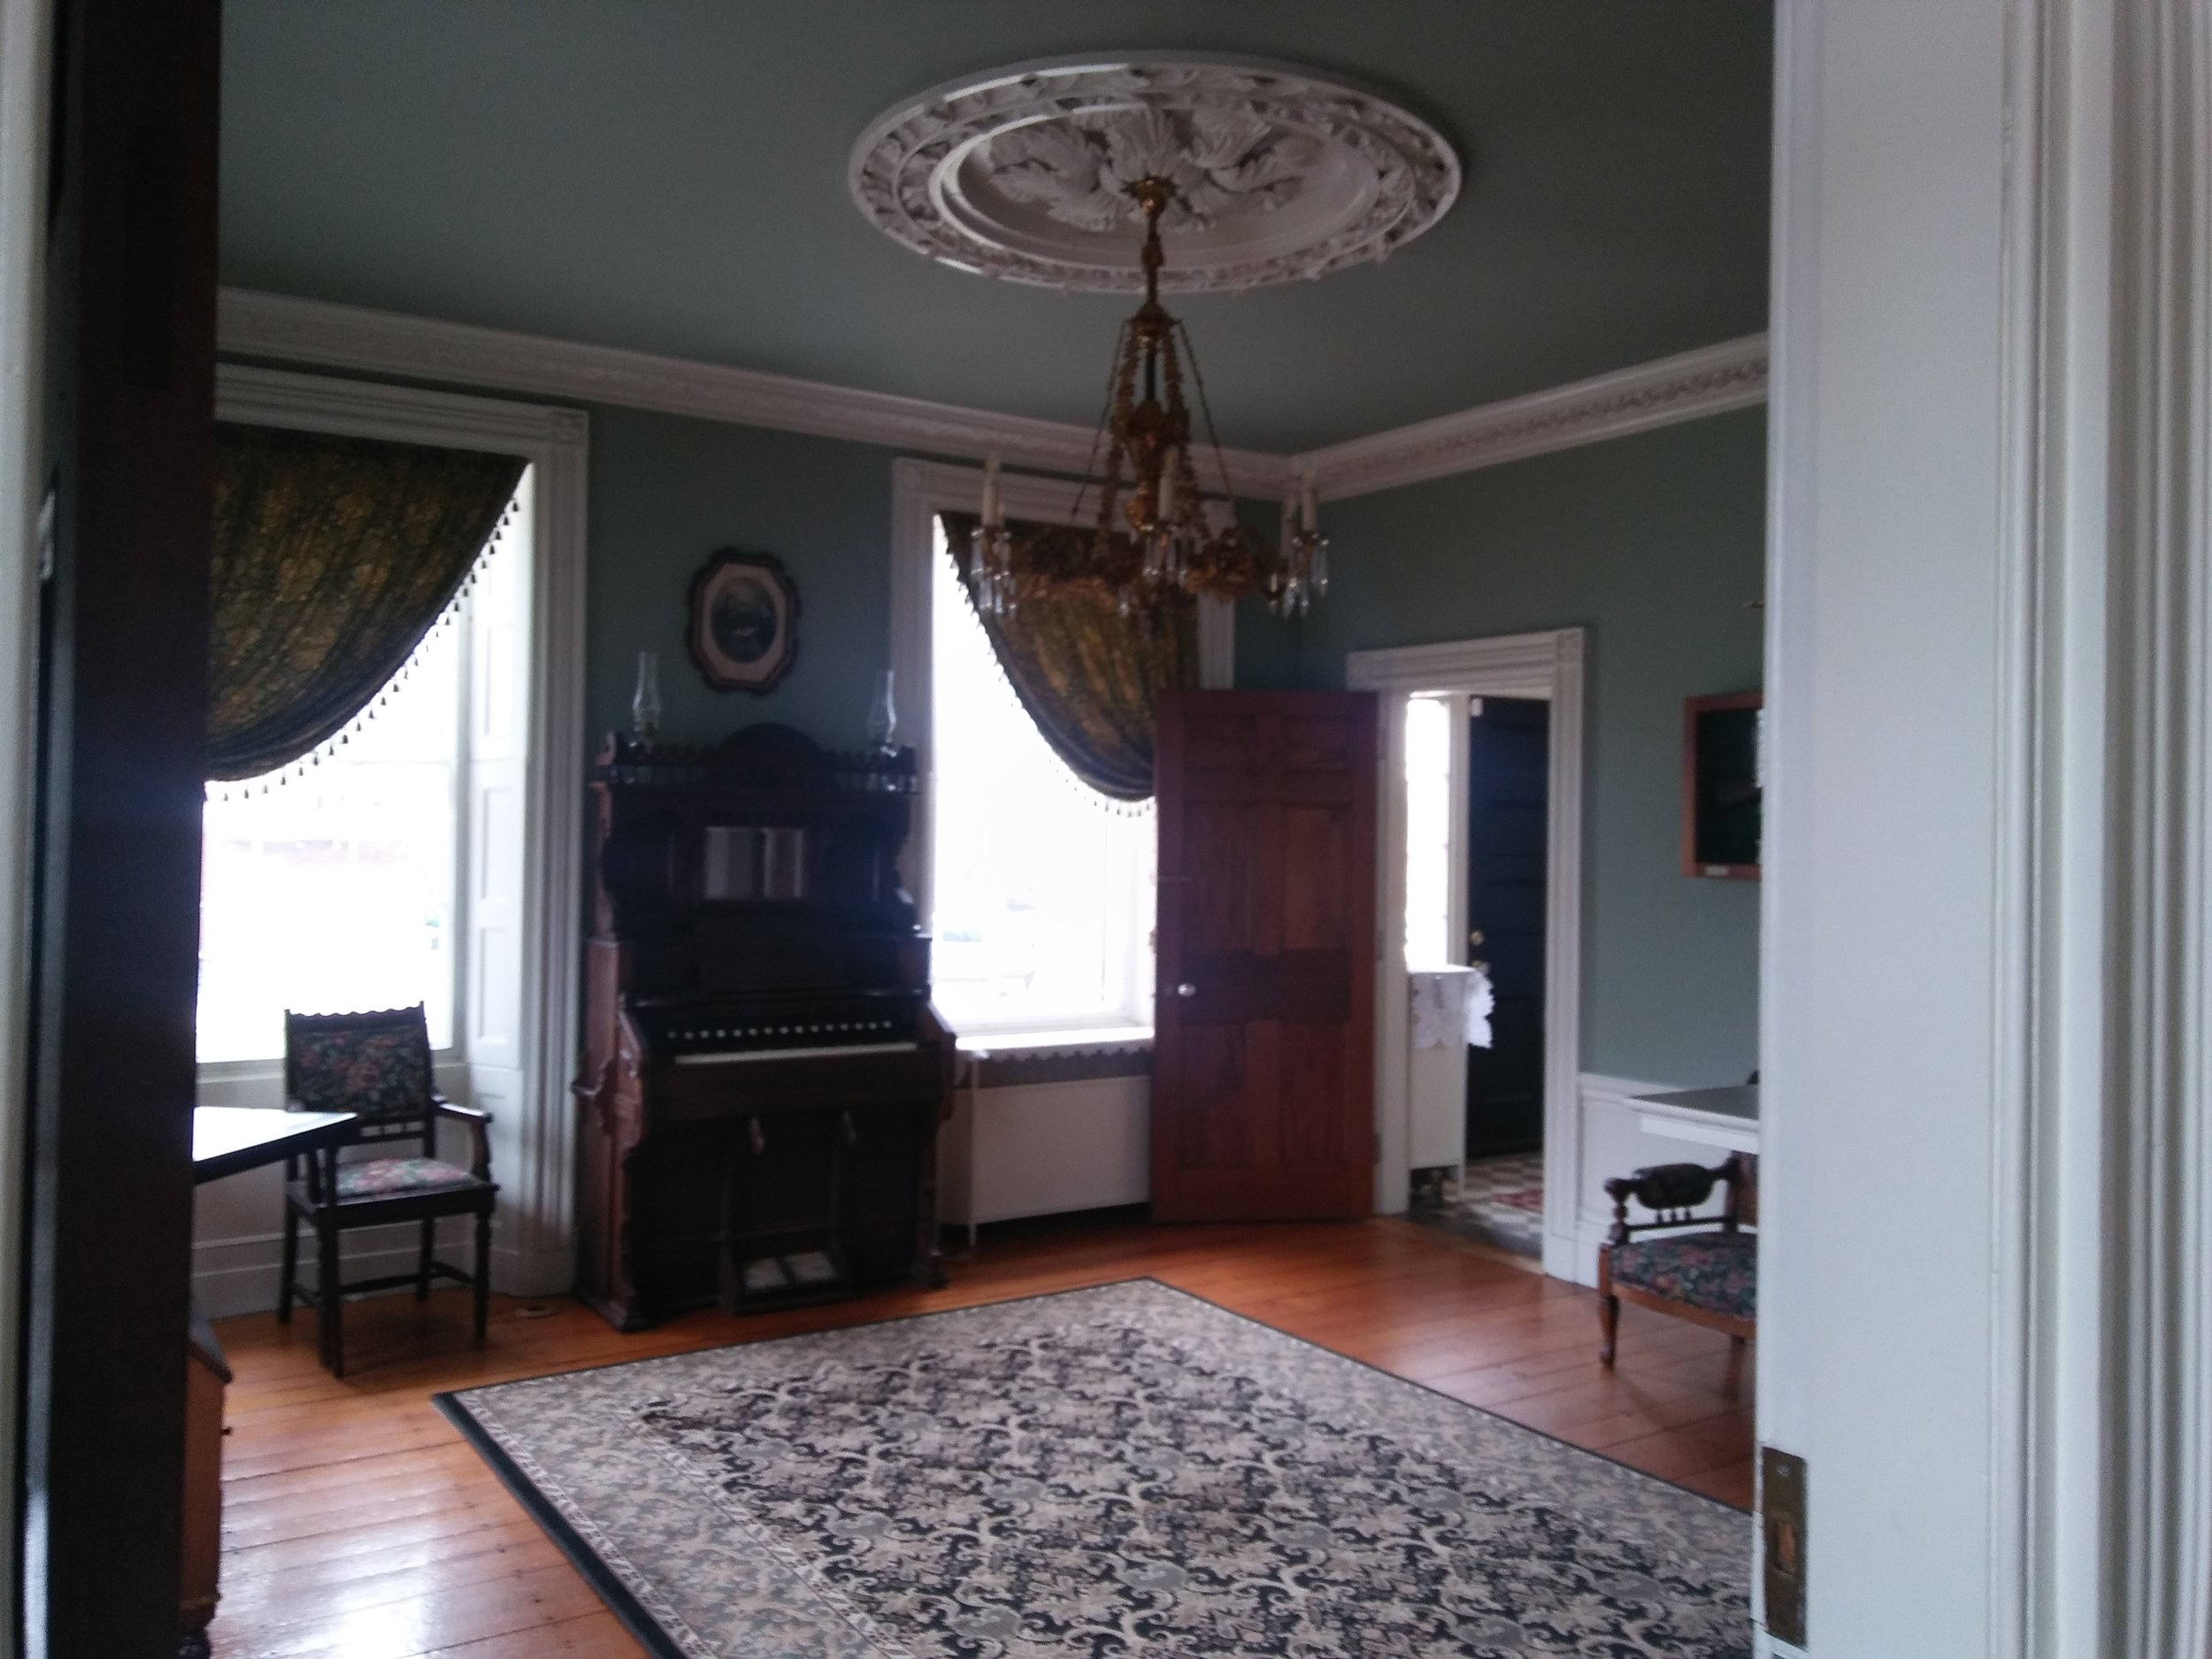 The historic East Parlor is the most authentic room in the house, and boasts the original pumpkin floor the Waters family had installed in the 1820s. Photo: Mary Bowen, Asa Waters Mansion.